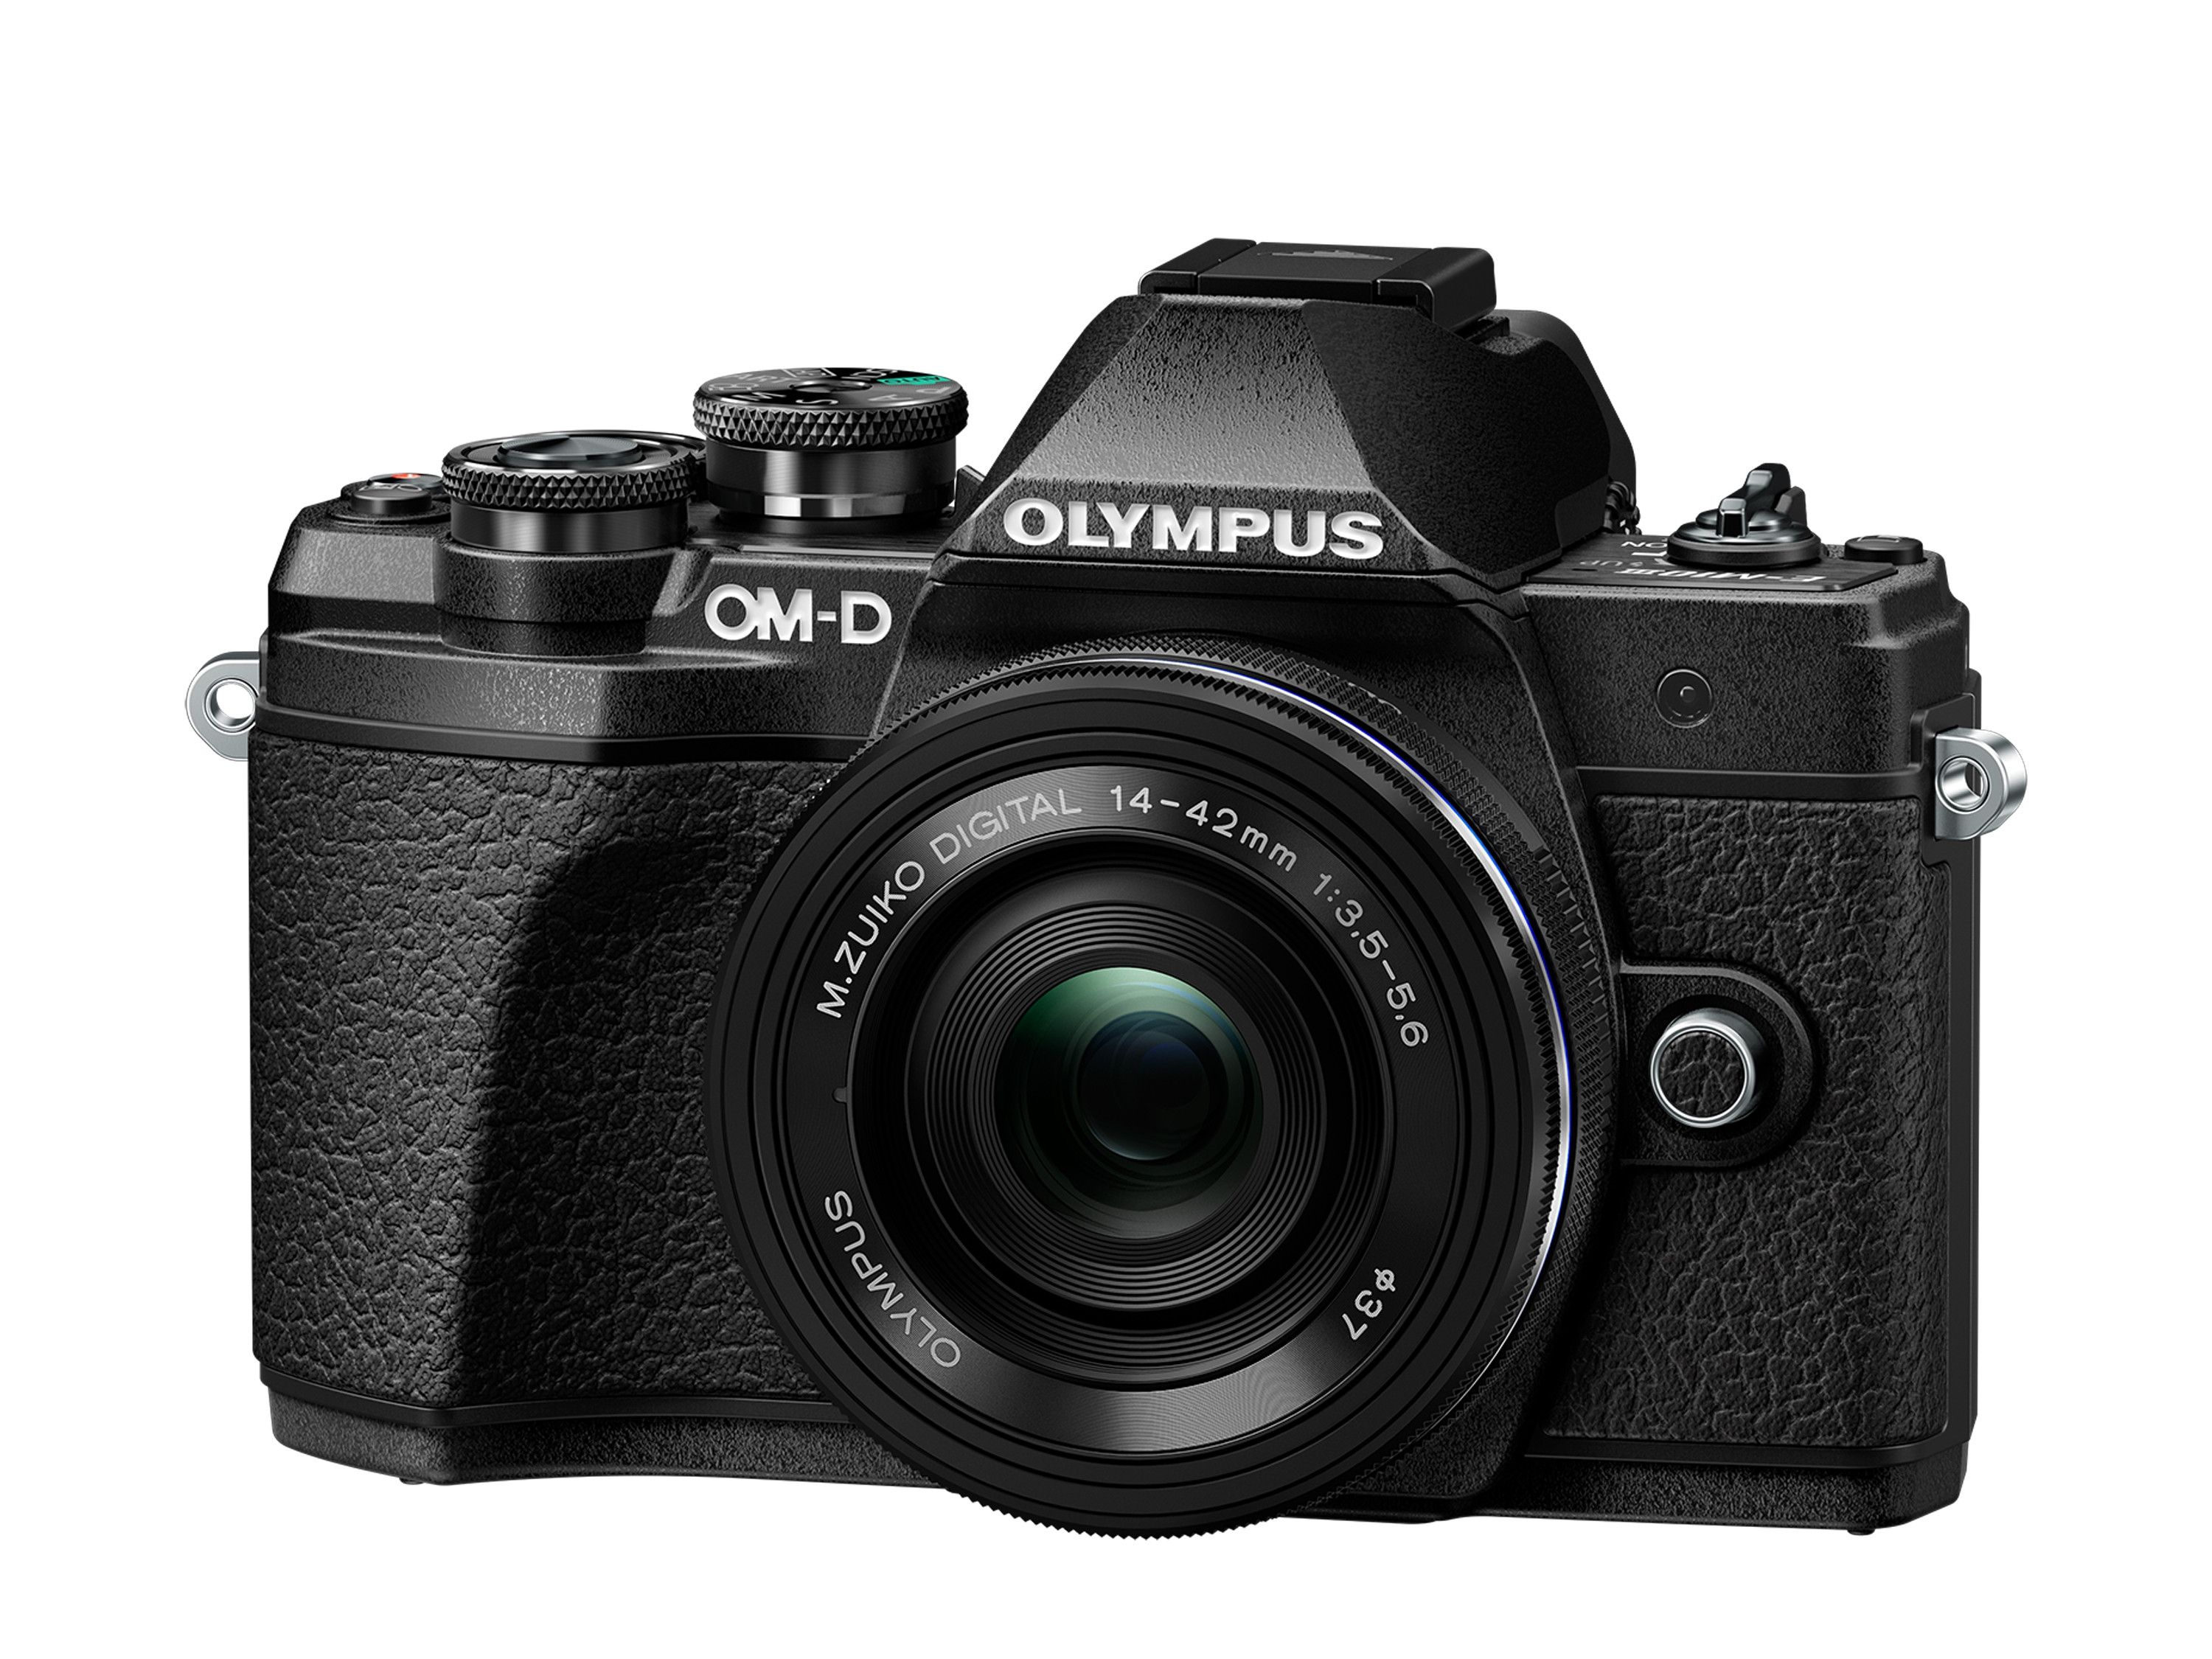 Olympus OM-D E-M10 Mark III Mirrorless Micro Four Thirds Digital Camera with...